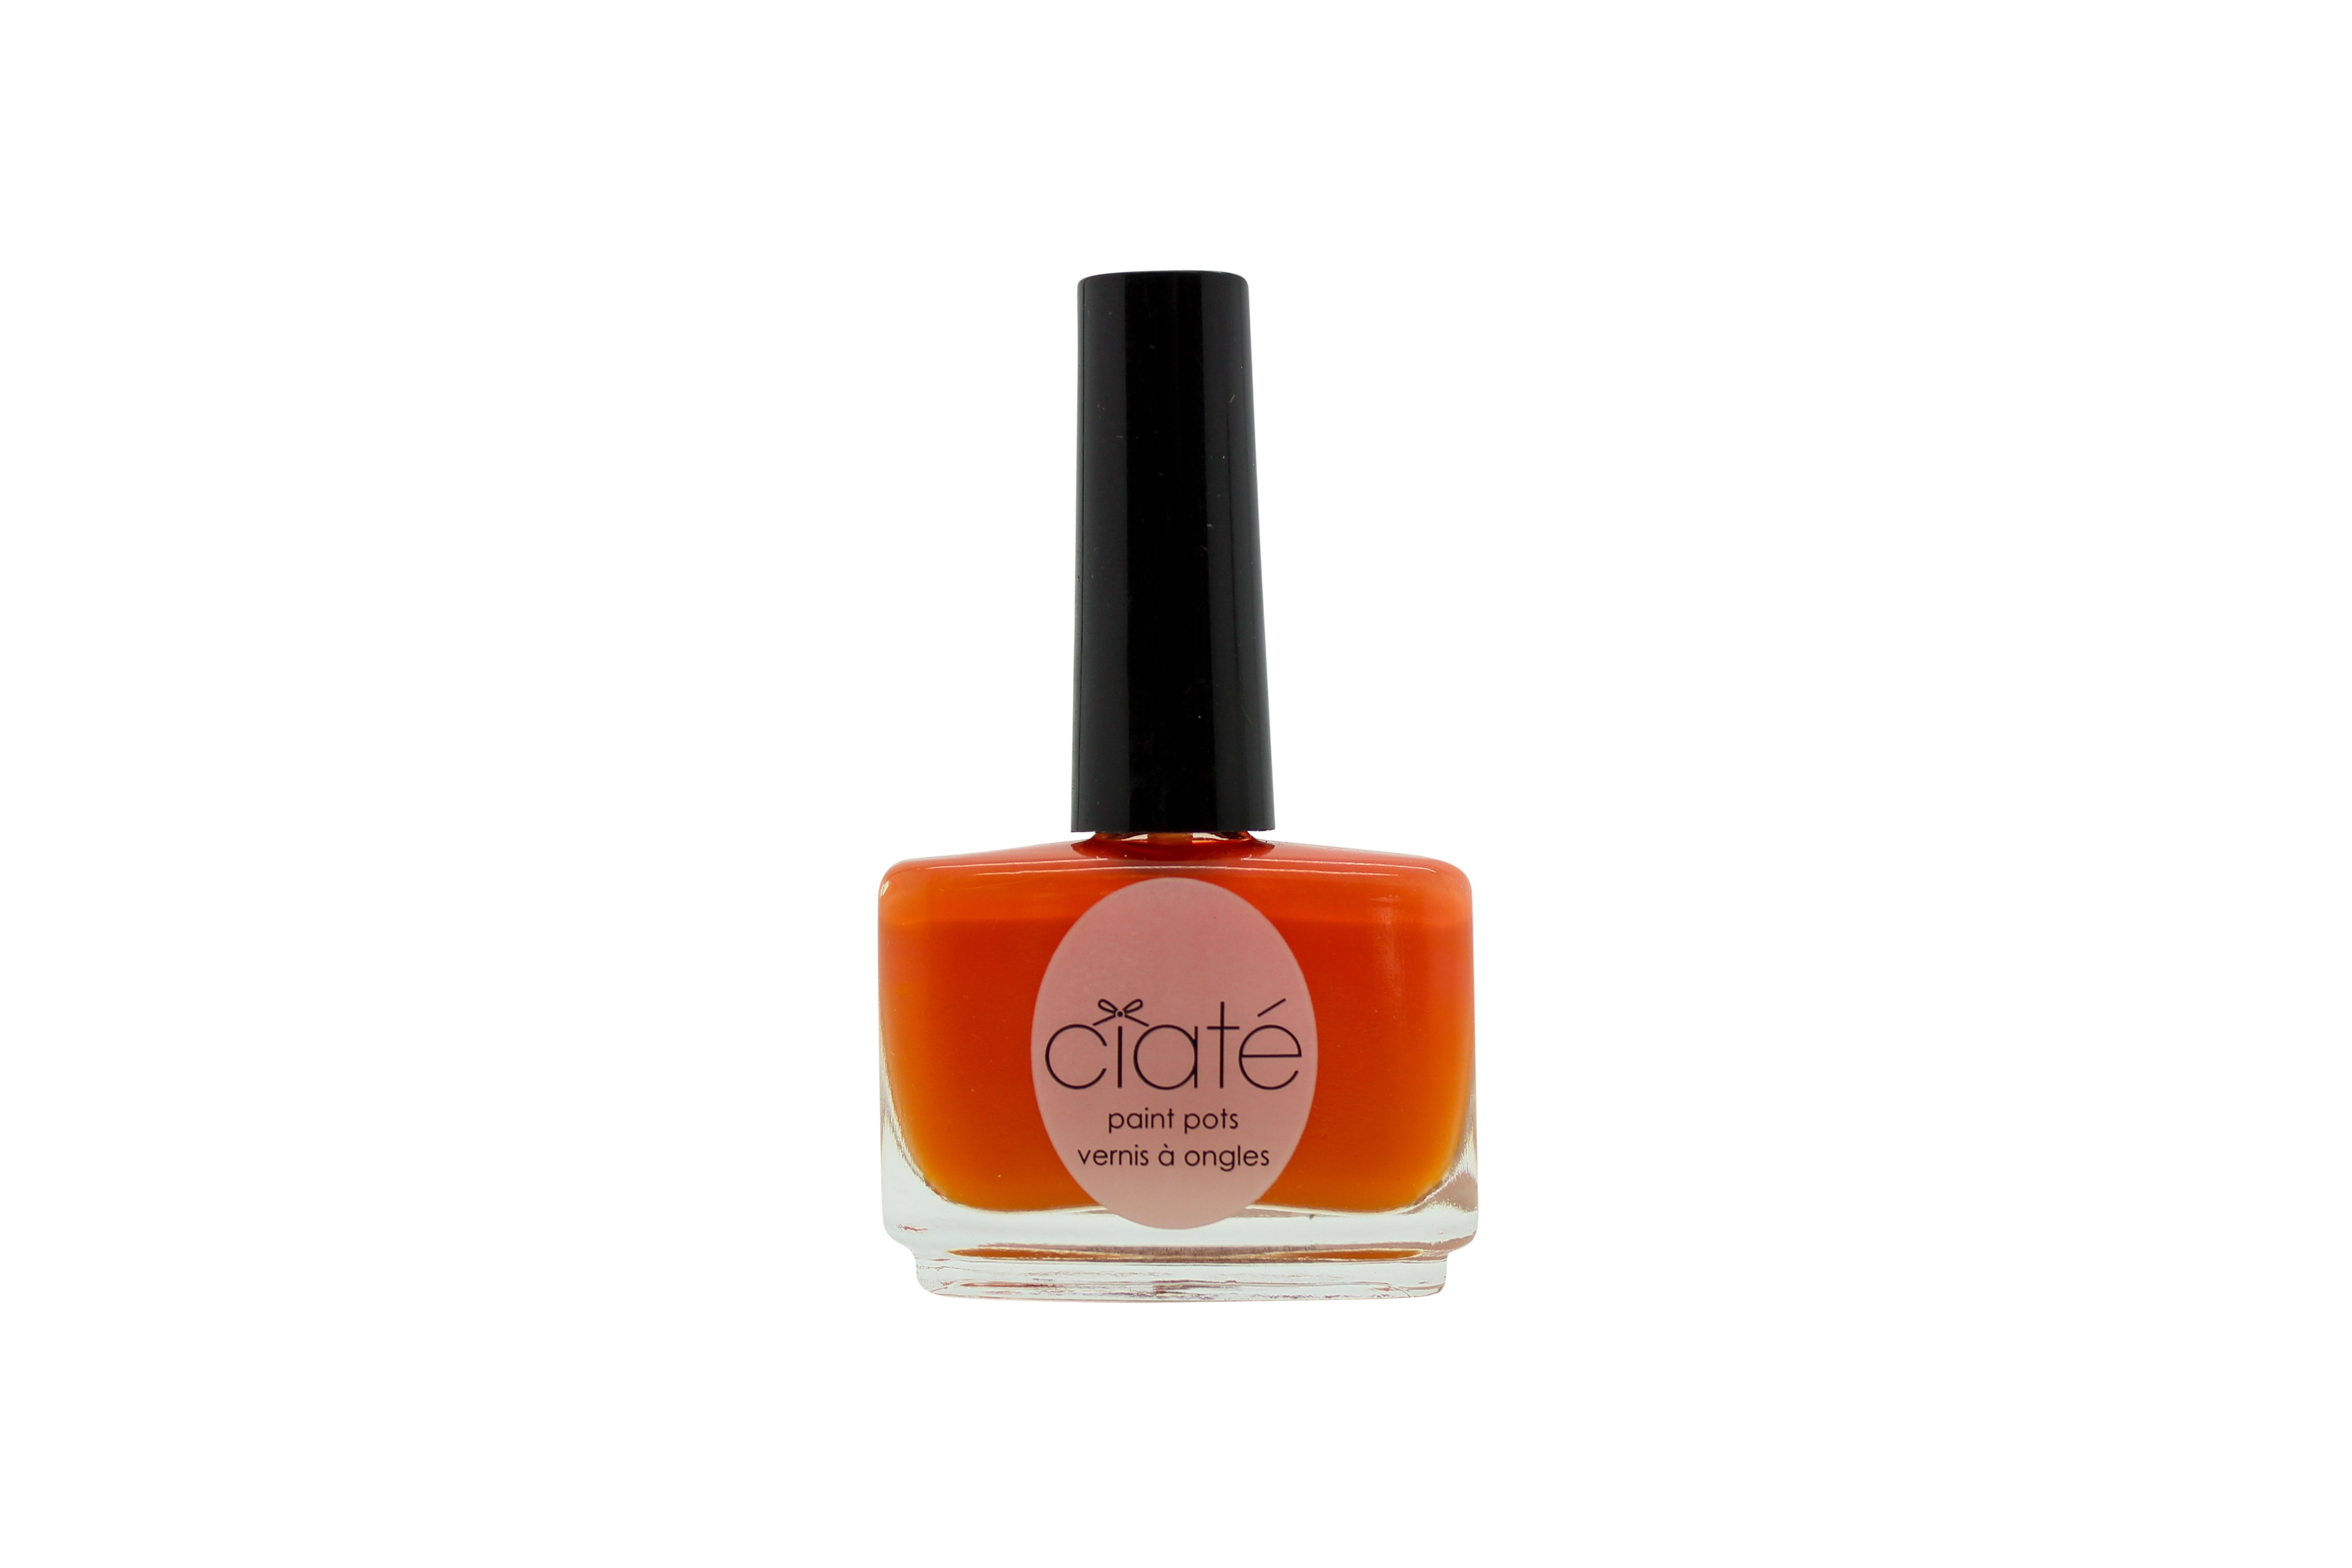 Ciate The Paint Pot Nail Polish 13.5ml - Speed Dial